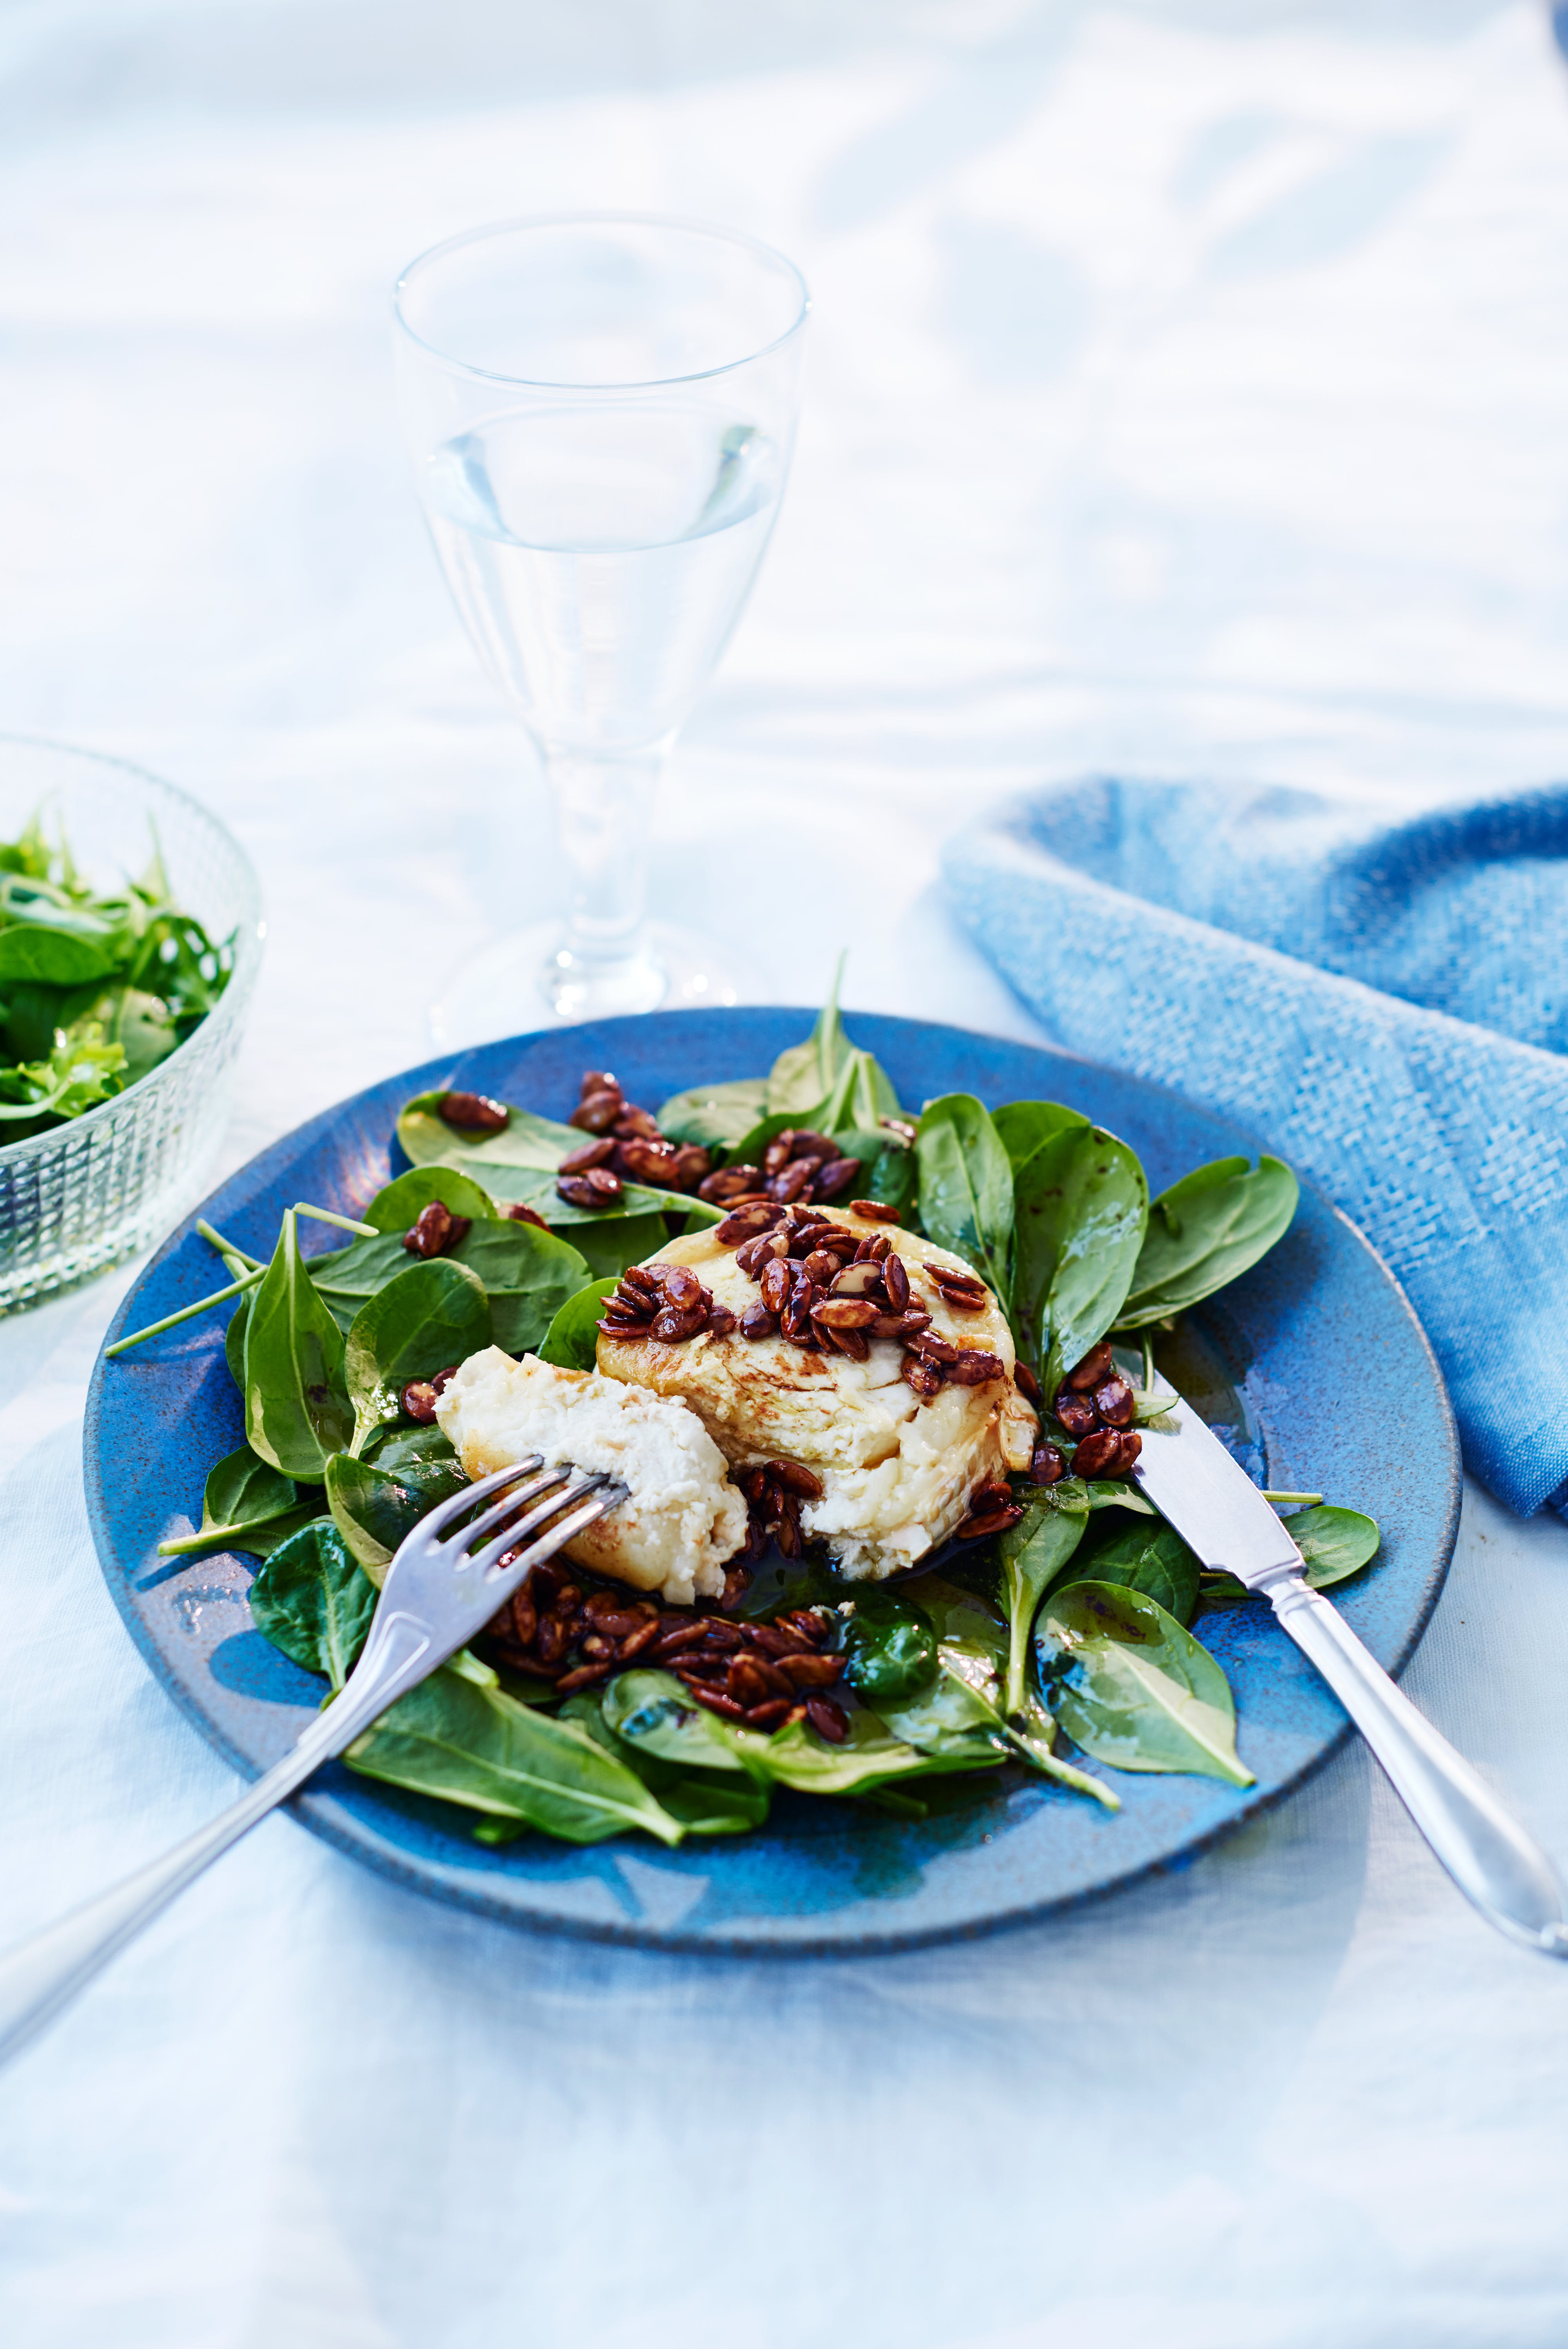 Goat cheese salad with balsamico butter